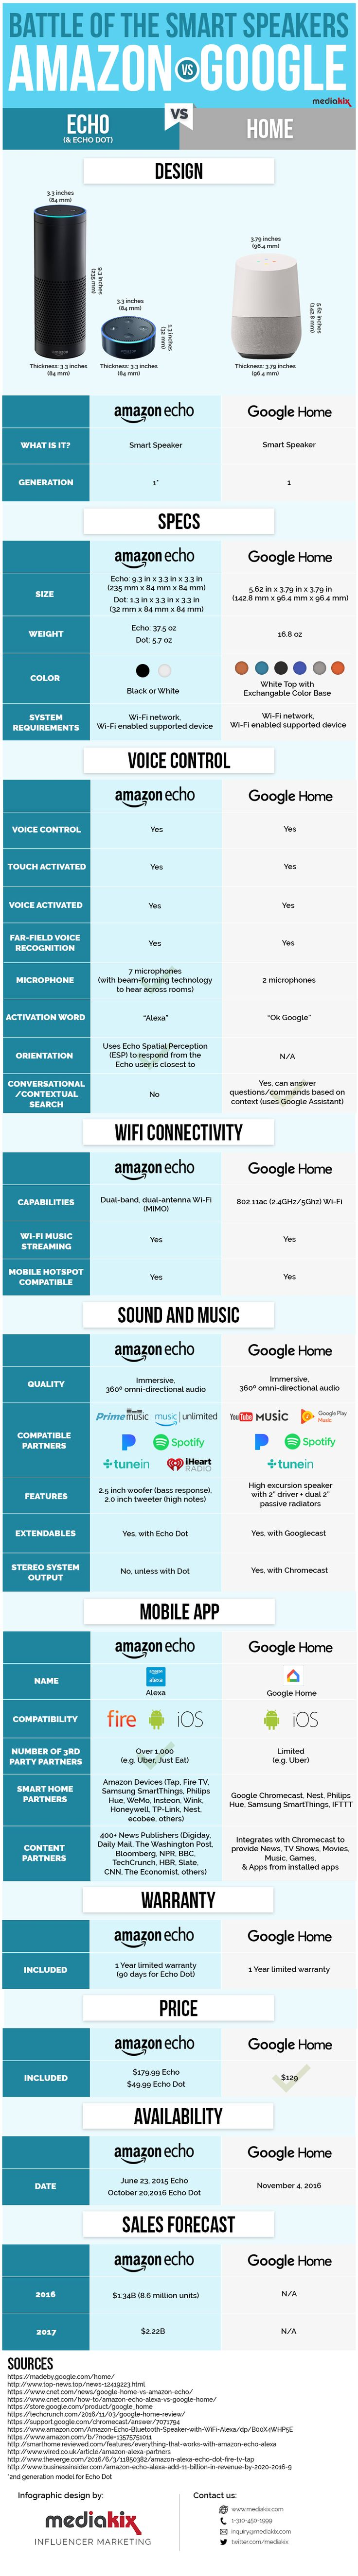 Google Home vs Amazon Echo Dot Smart Speaker Infographic Comparison  It's the battle of the talk bots. Who's bigger and better? Both are quite impressive in their own right.